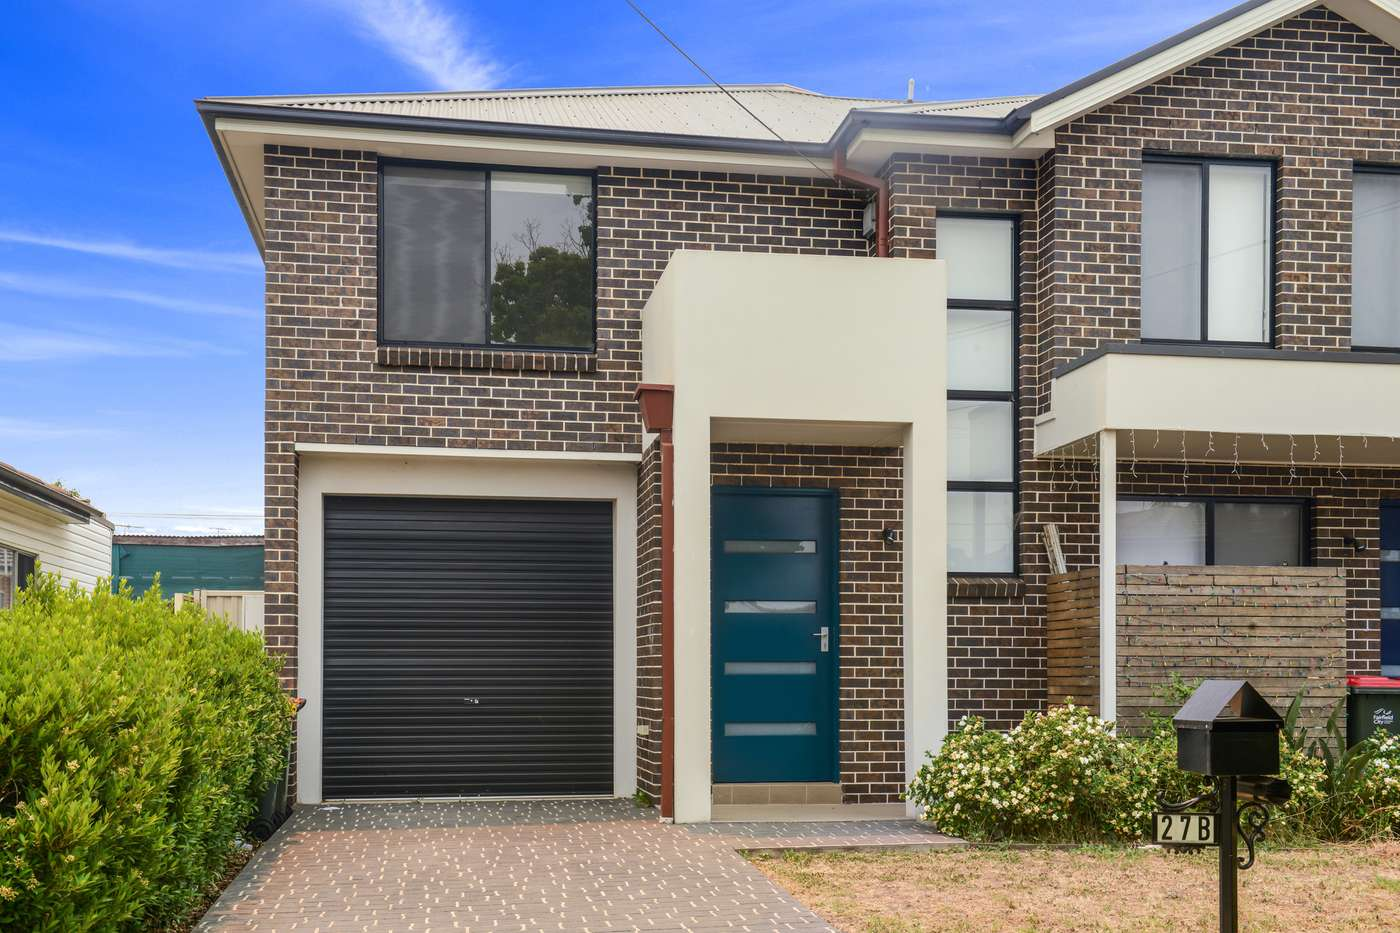 Main view of Homely semidetached listing, 27B Margaret Street, Fairfield West, NSW 2165